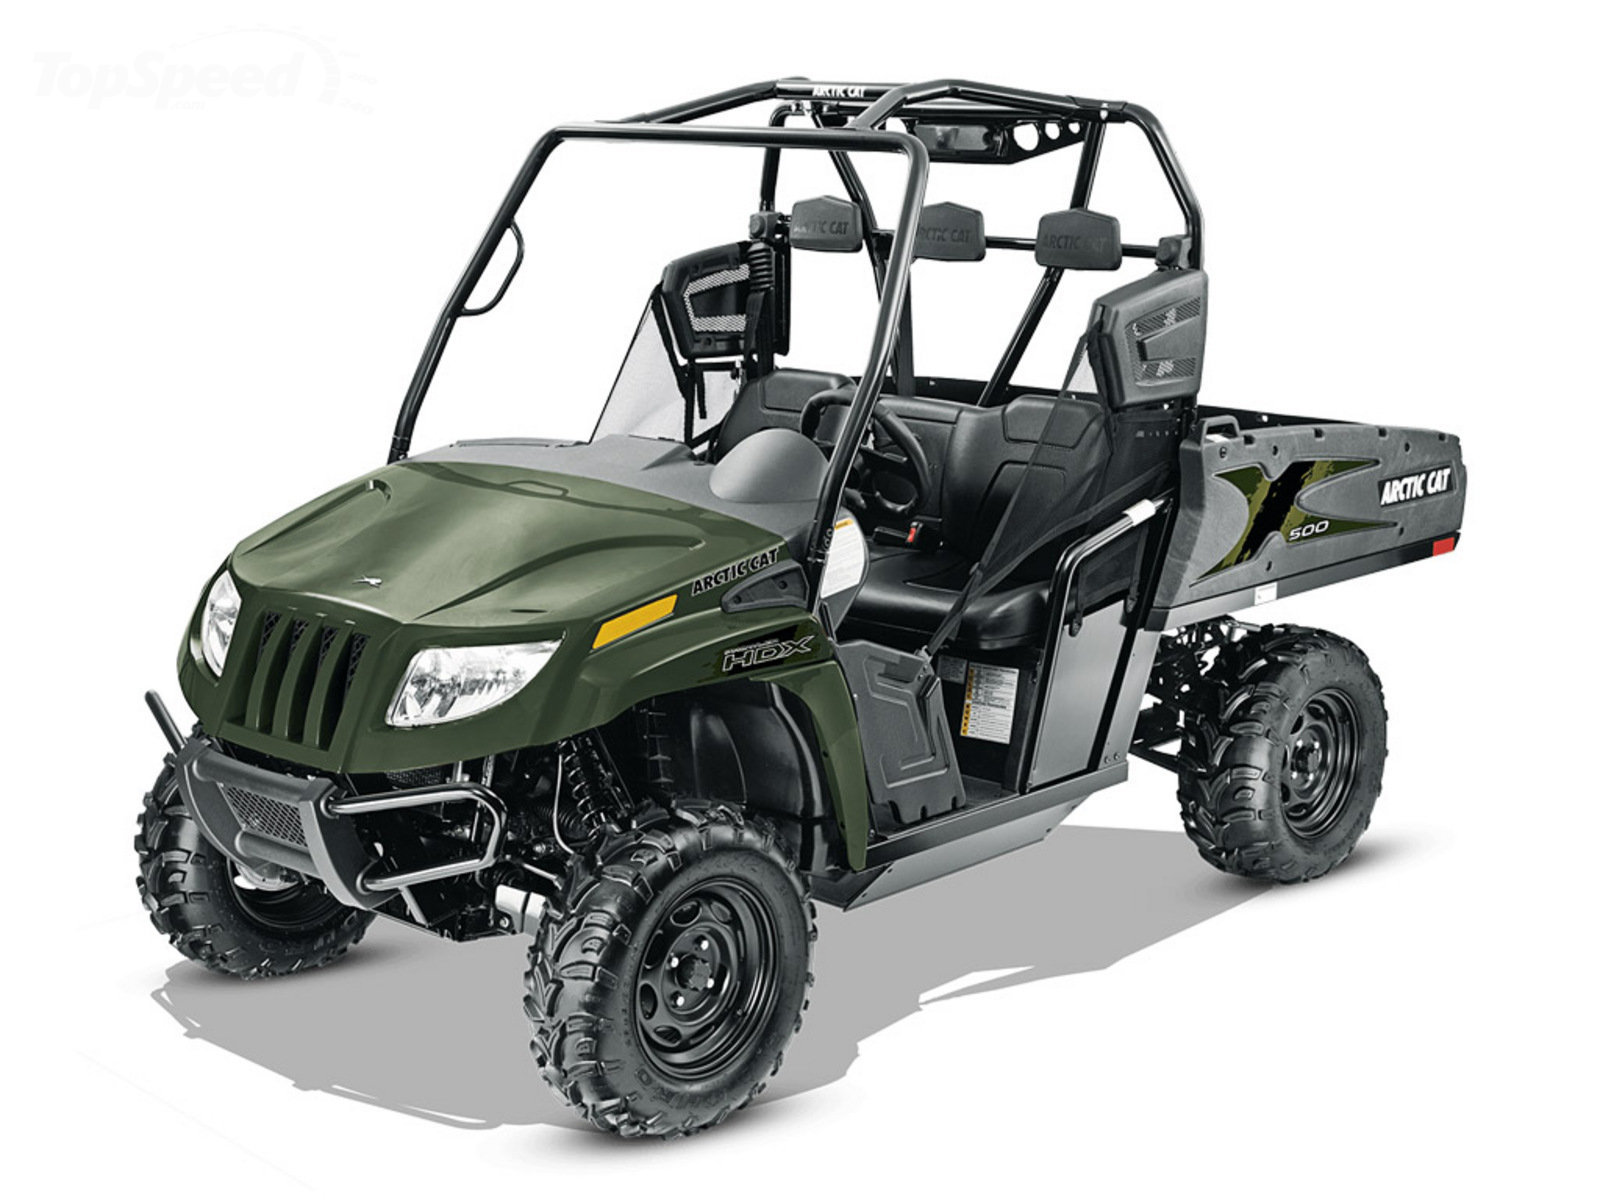 2015 Arctic Cat Prowler 500 Hdx Review Top Speed